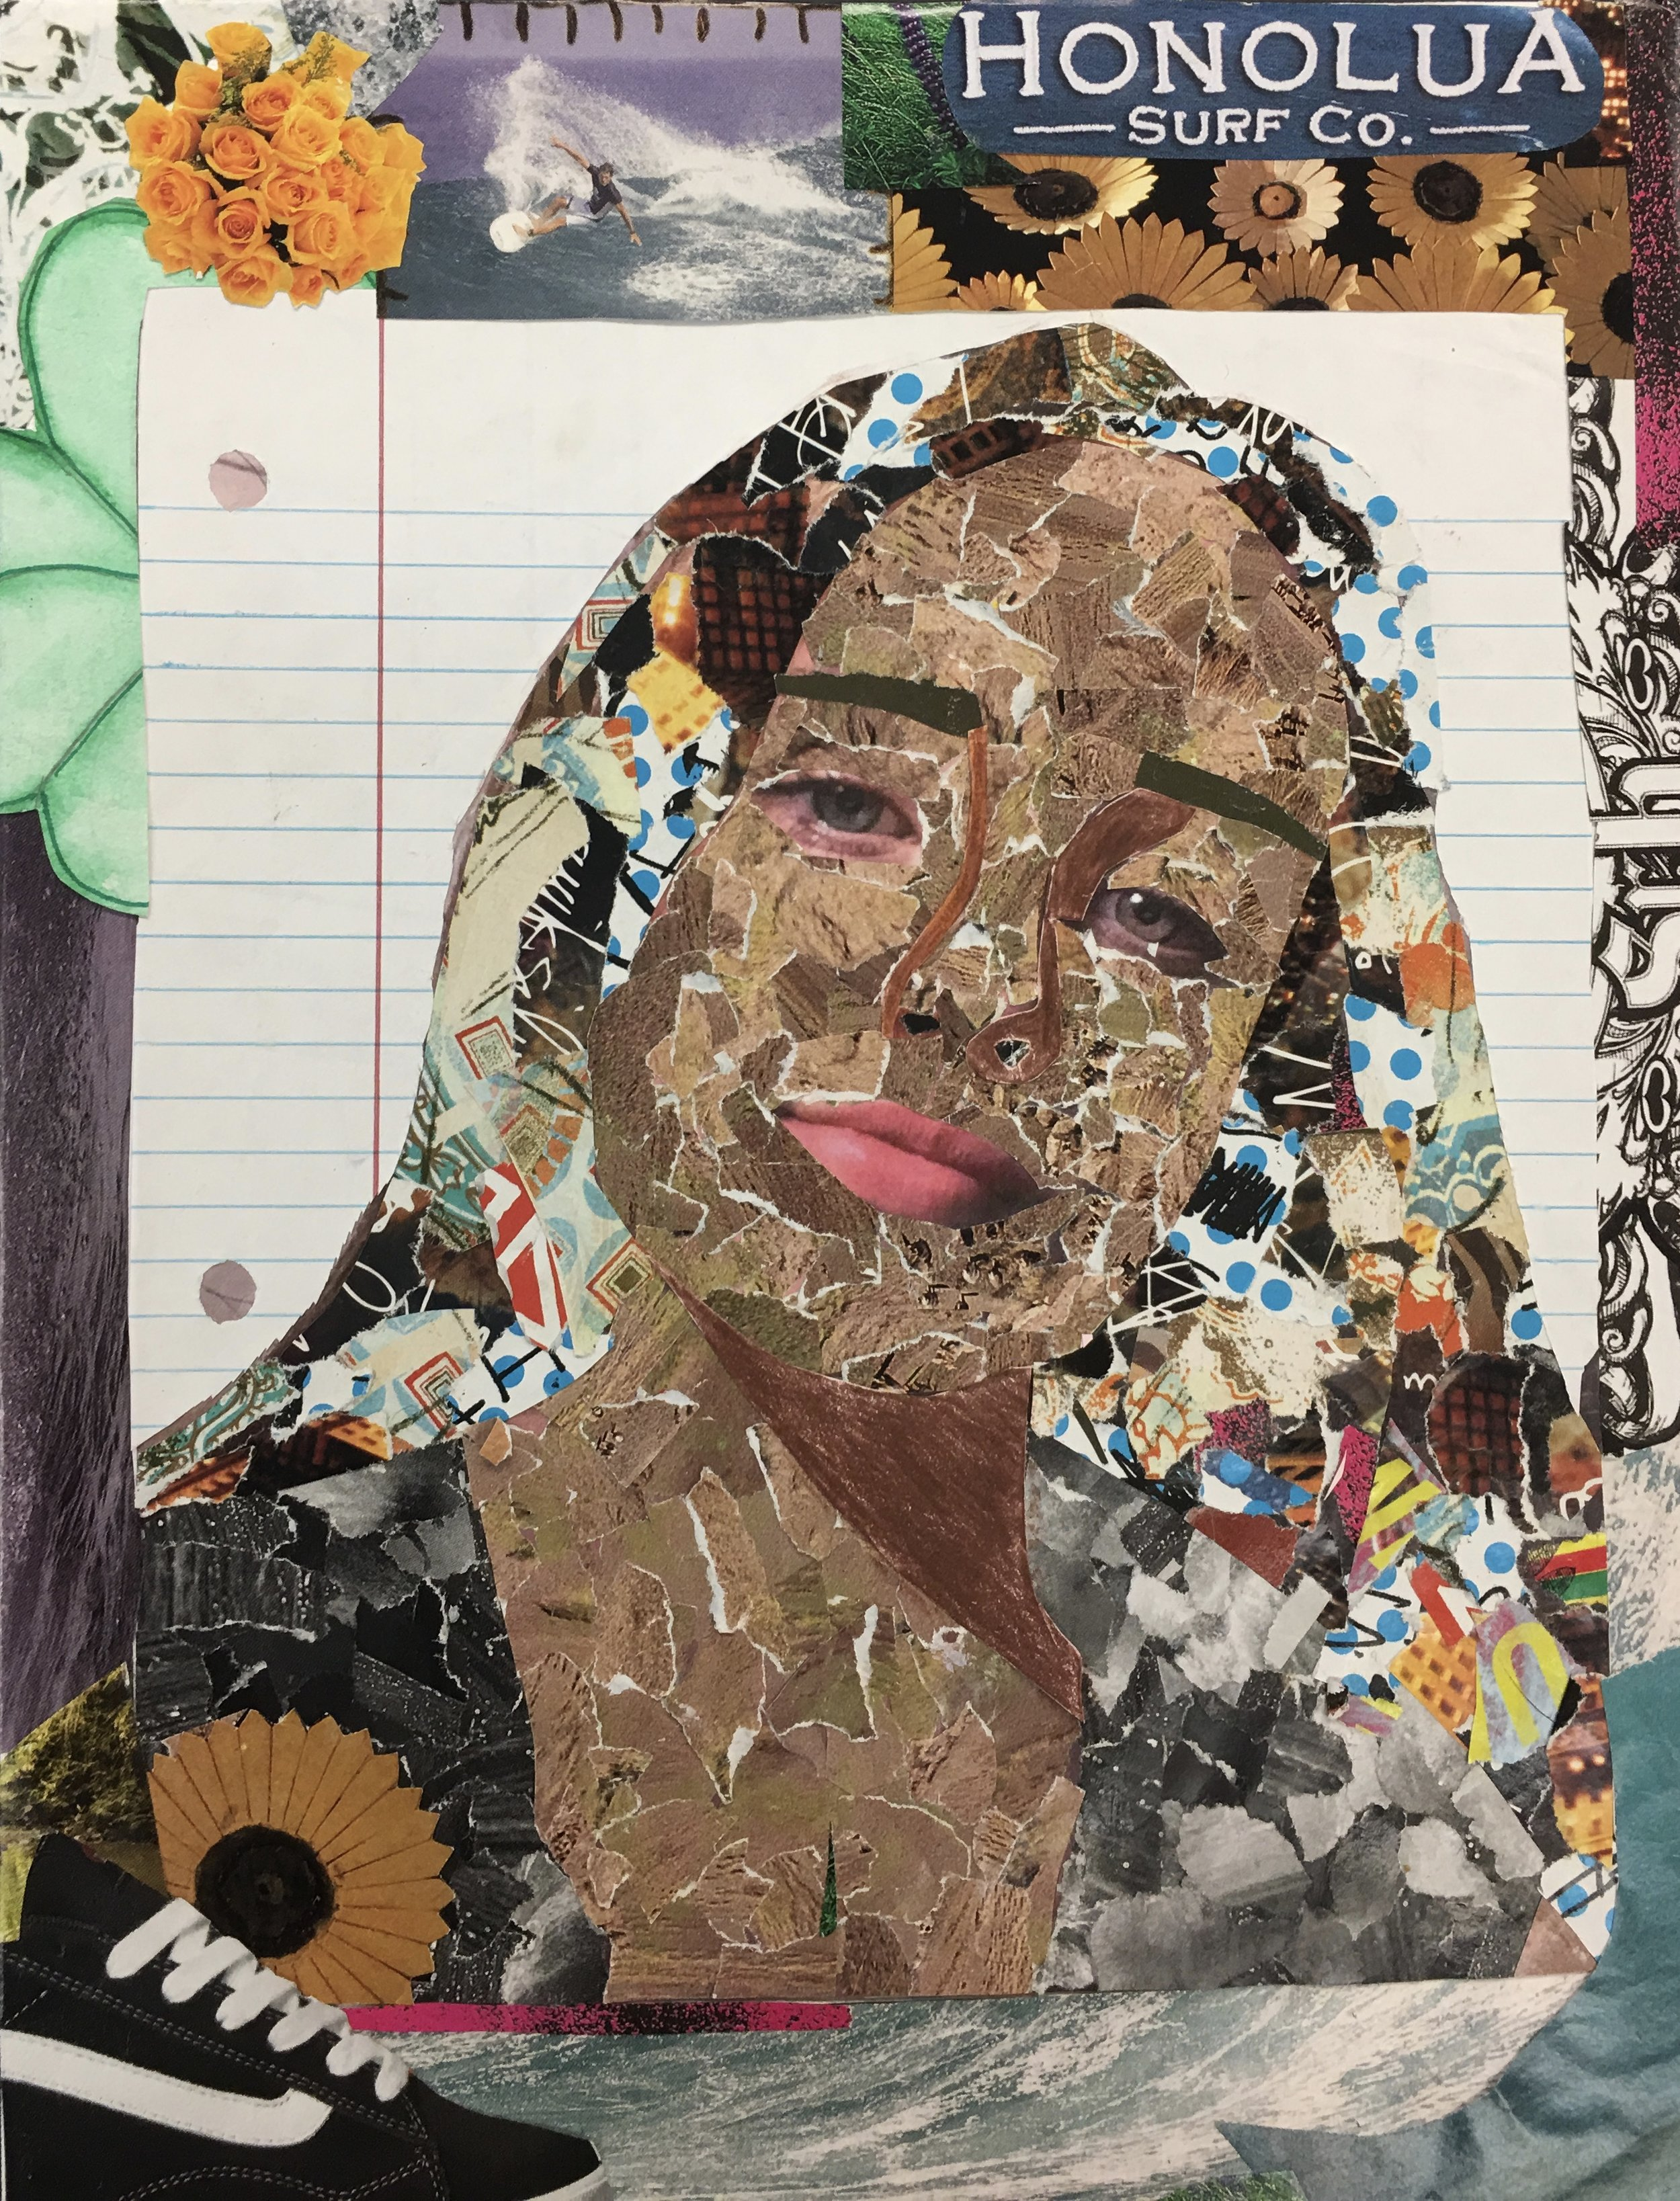 Final artwork - This won a first place award in the San Diego area and then a California state wide competition. She used a photograph of herself to underlay the collage self-portrait.